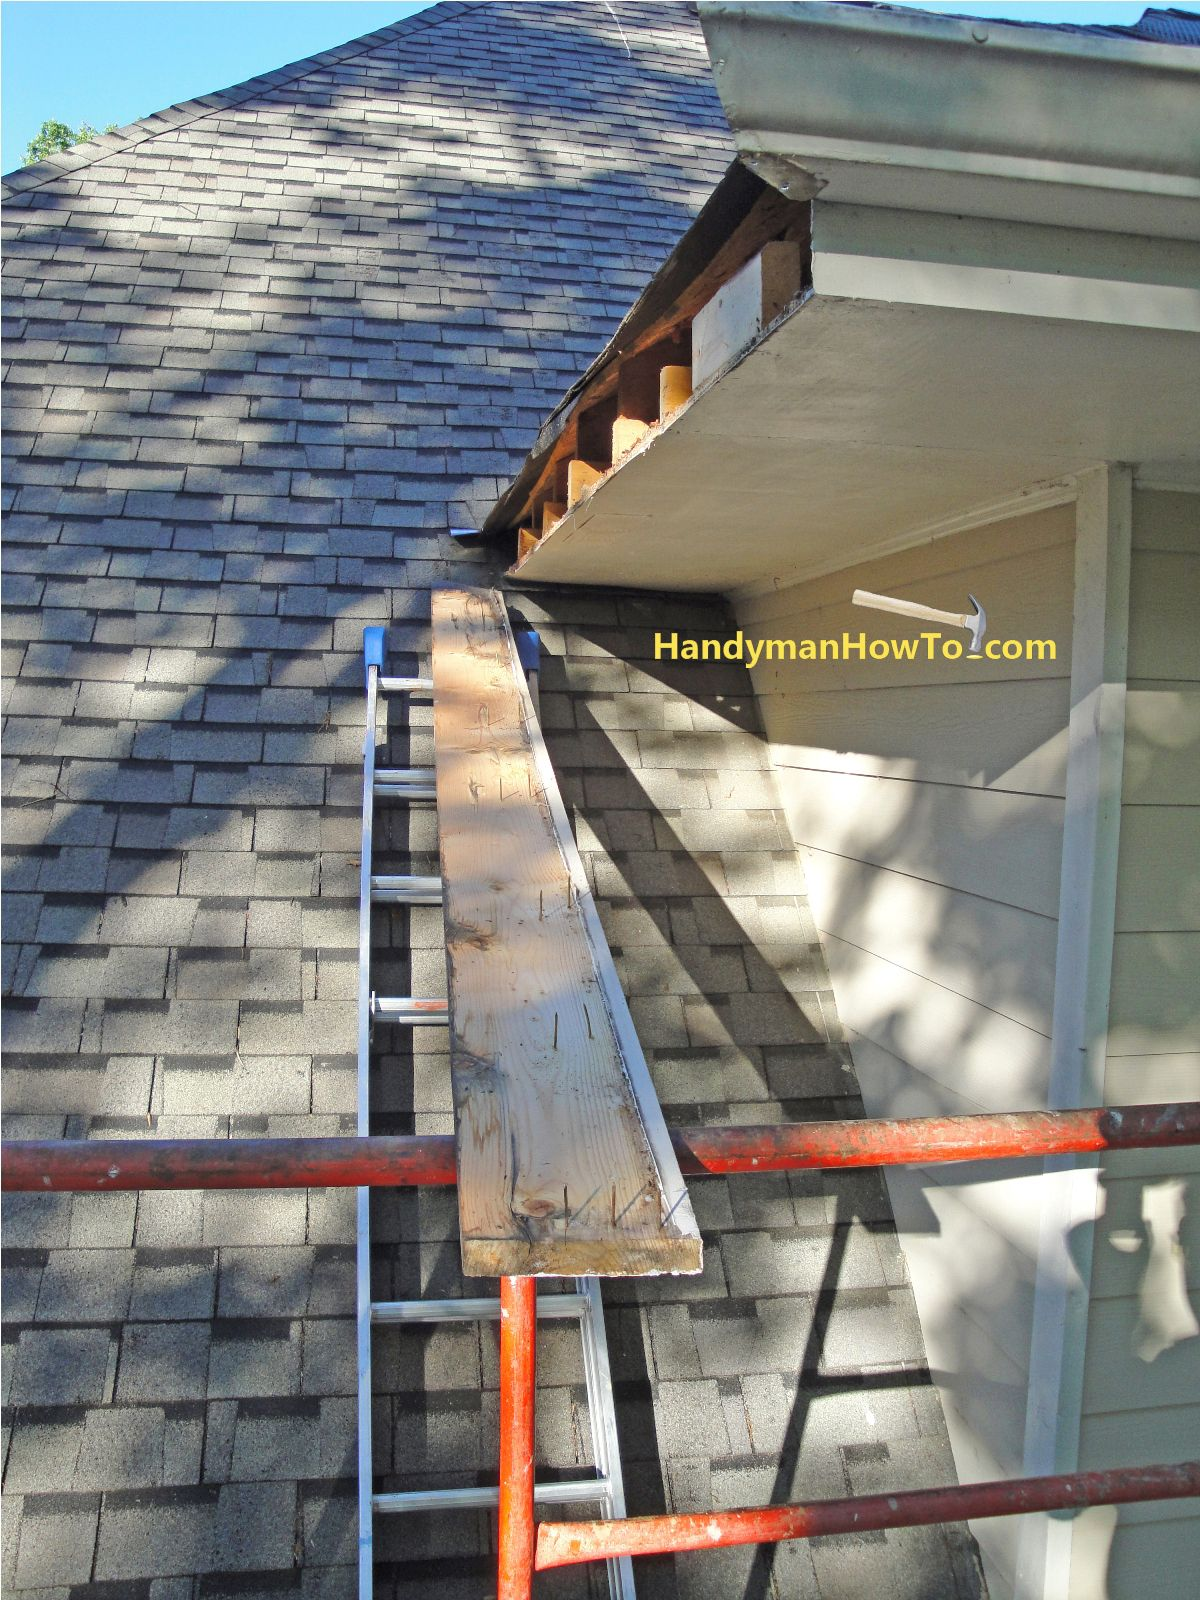 How To Repair Rotted Soffit And Fascia Photo Tutorial Install A New Plywood Soffit And Pvc Fascia Board Diy Home Repair Fascia Home Repair